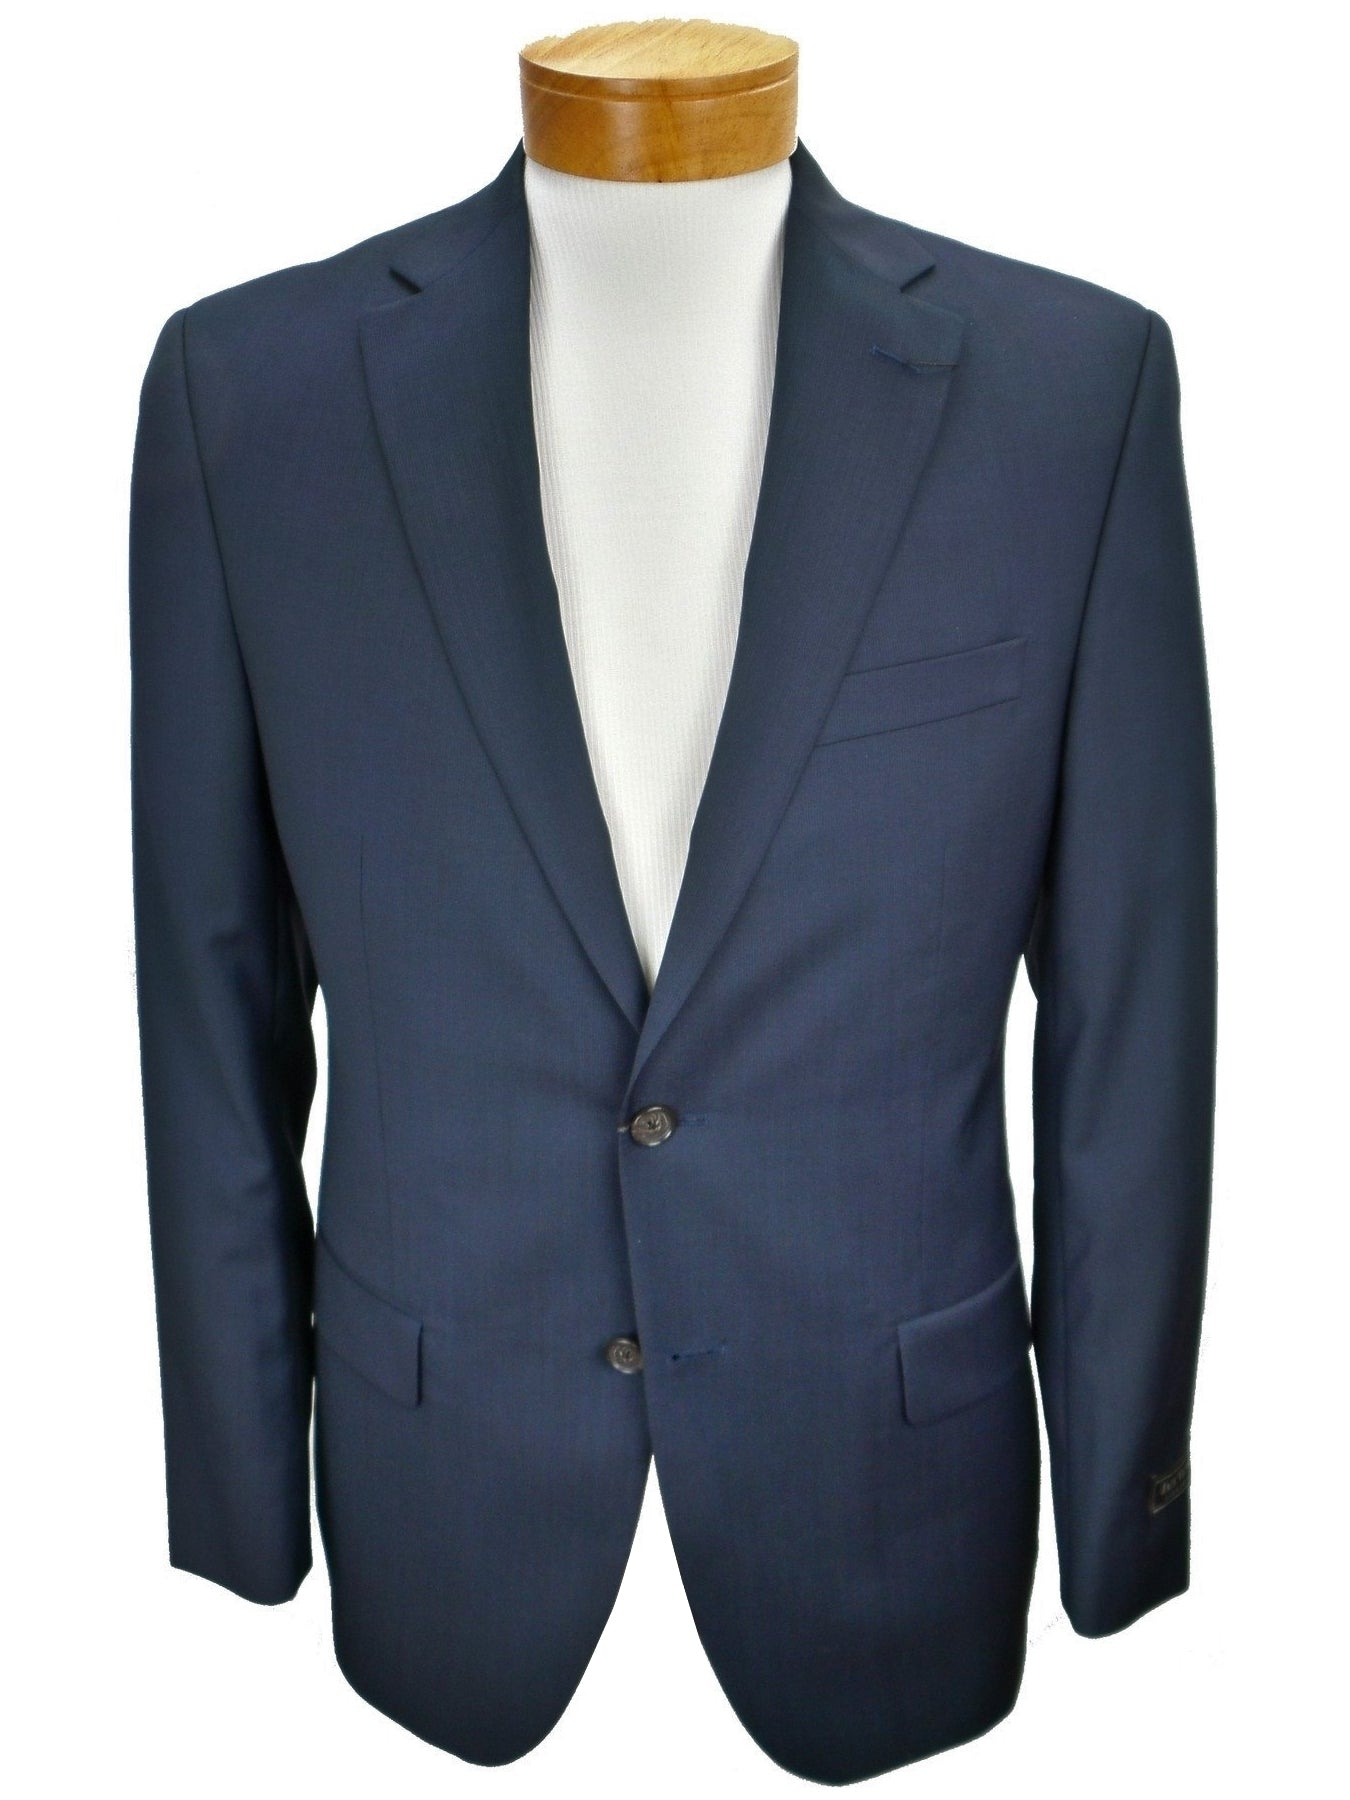 Jack Victor Conway CT Stripe Navy Suit Jacket and Dress Pants